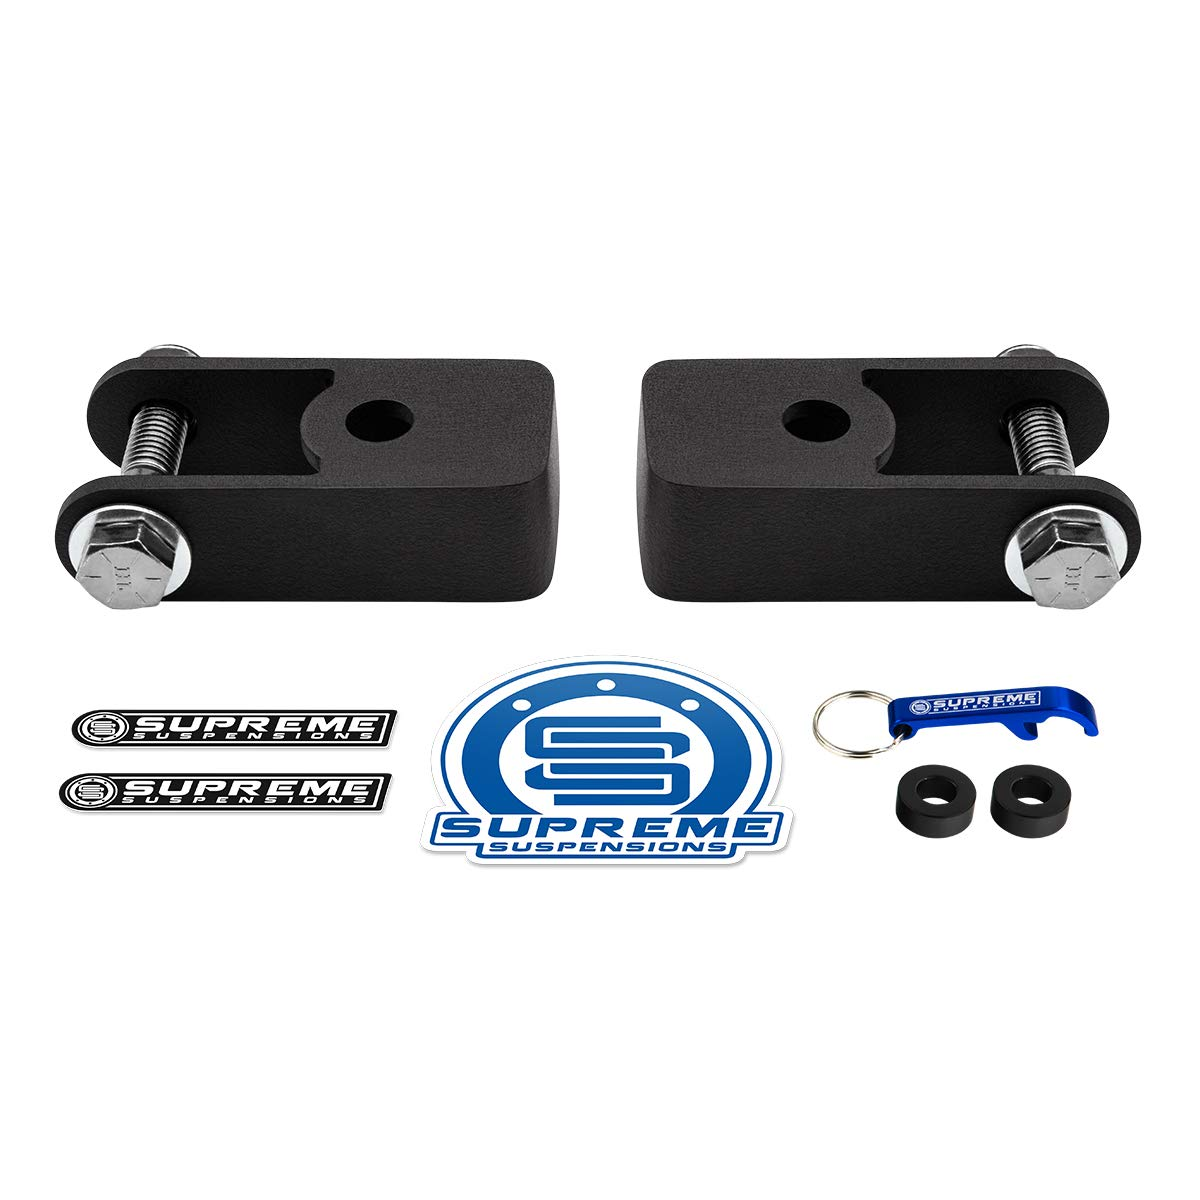 Supreme Suspensions - Rear Shock Extenders for 2007-2014 Cadillac Escalade High-Strength Steel Shock Extension Brackets Kit 2WD 4WD (Black)